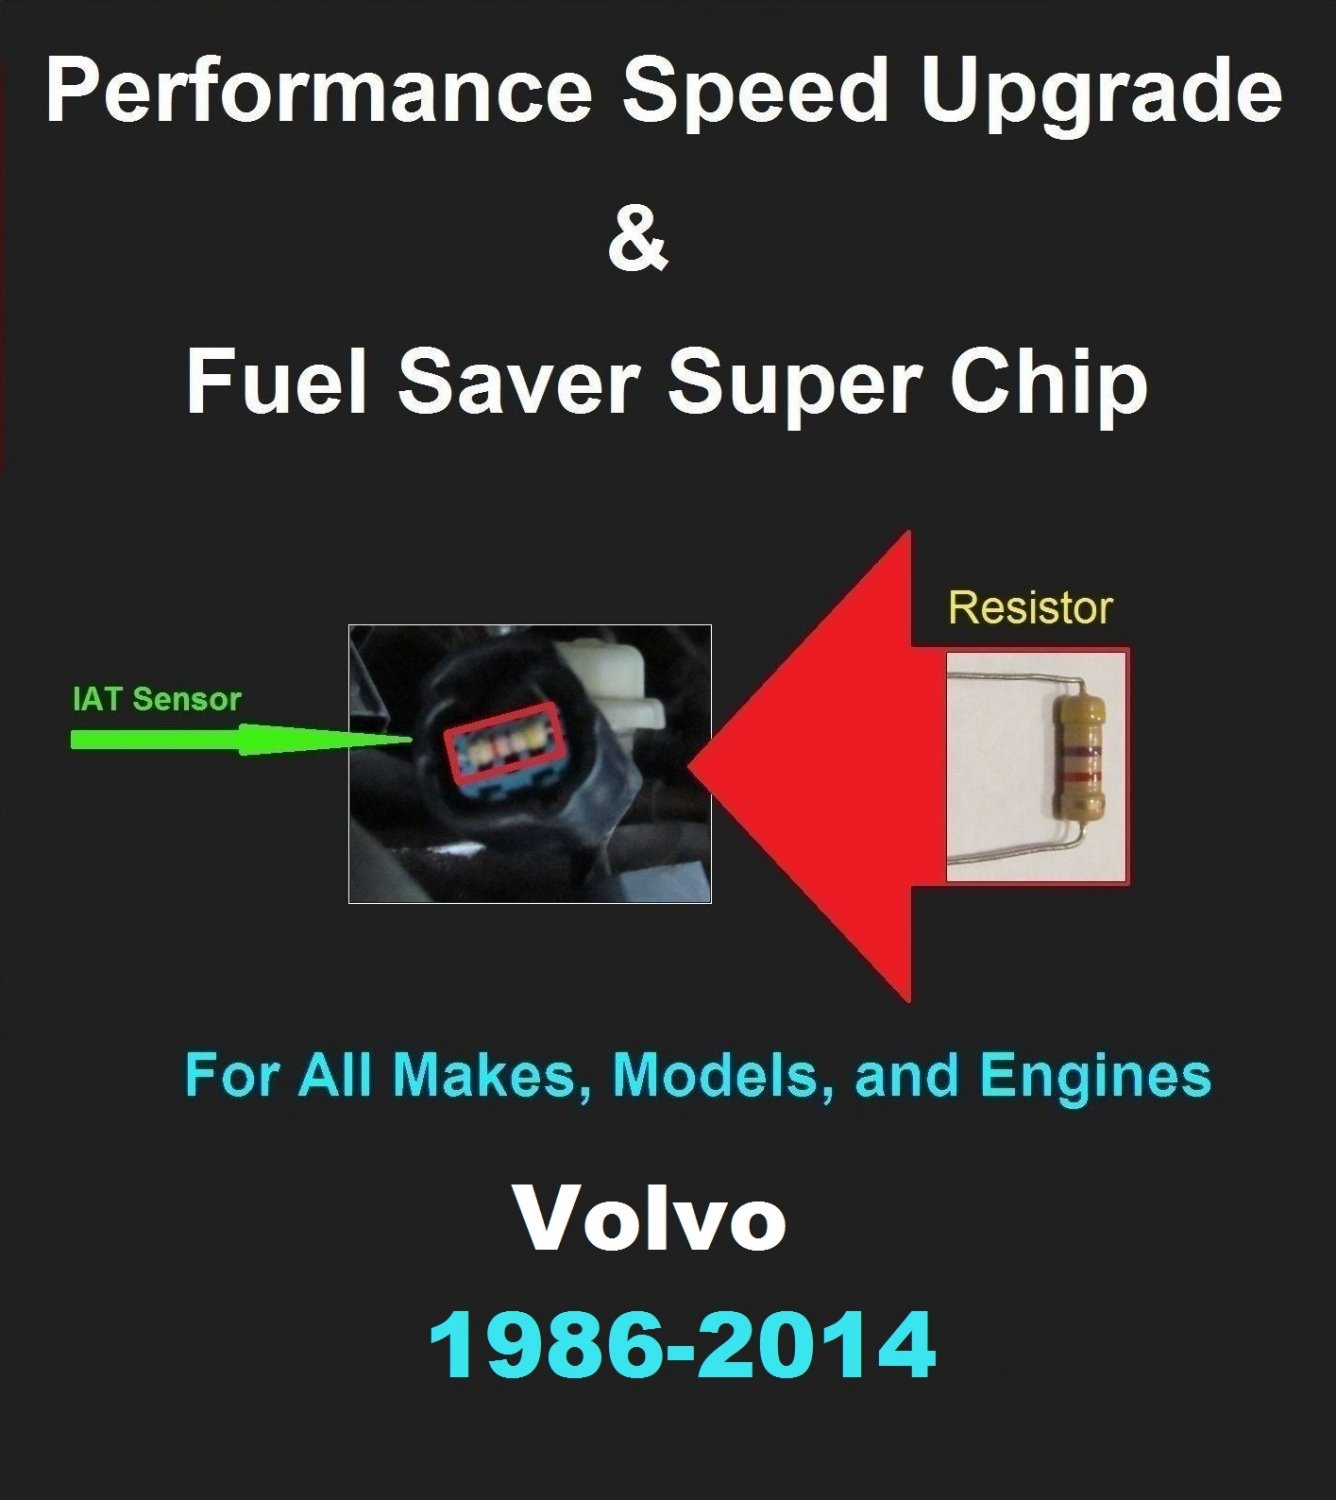 Volvo Performance IAT Sensor Resistor Chip Mod Kit Increase MPG HP Speed Power Super Fuel Gas Saver